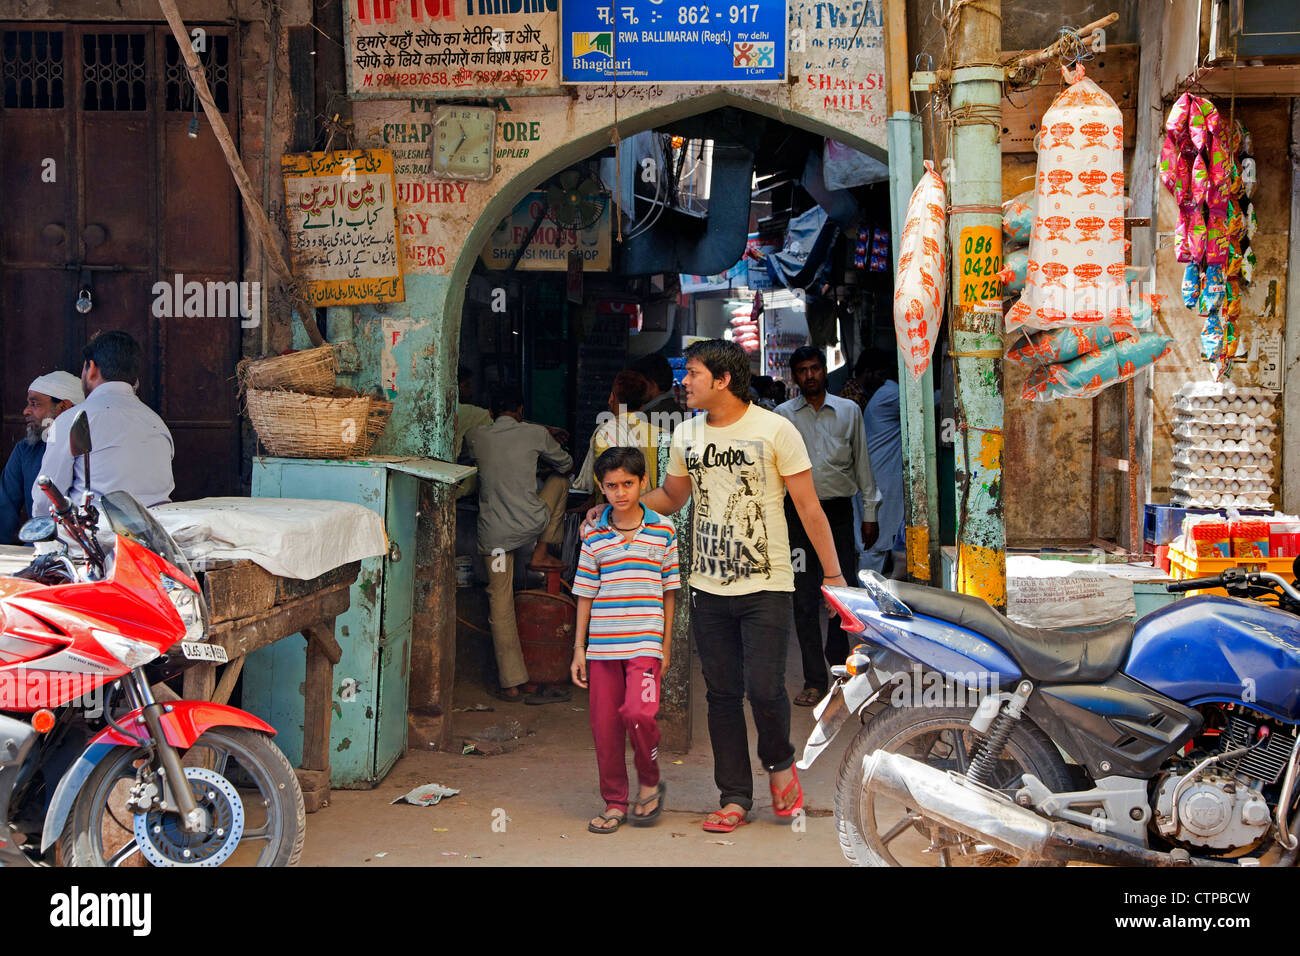 Pedestrians shopping in busy alley with stores selling goods on the street in Old Delhi, India - Stock Image